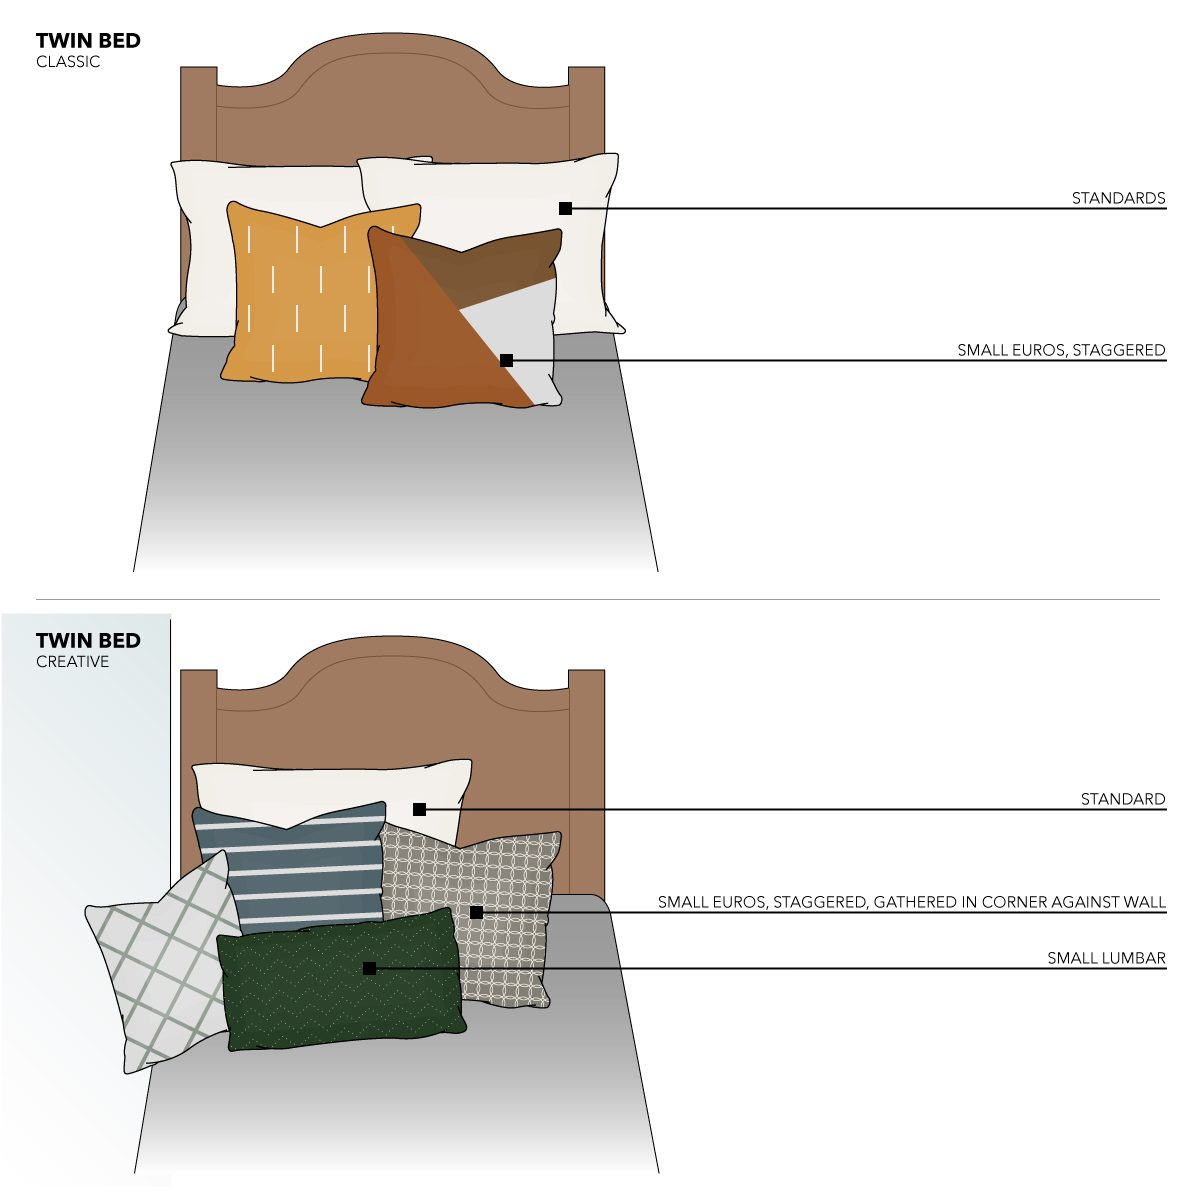 Pillow Arrangements for Twin Beds